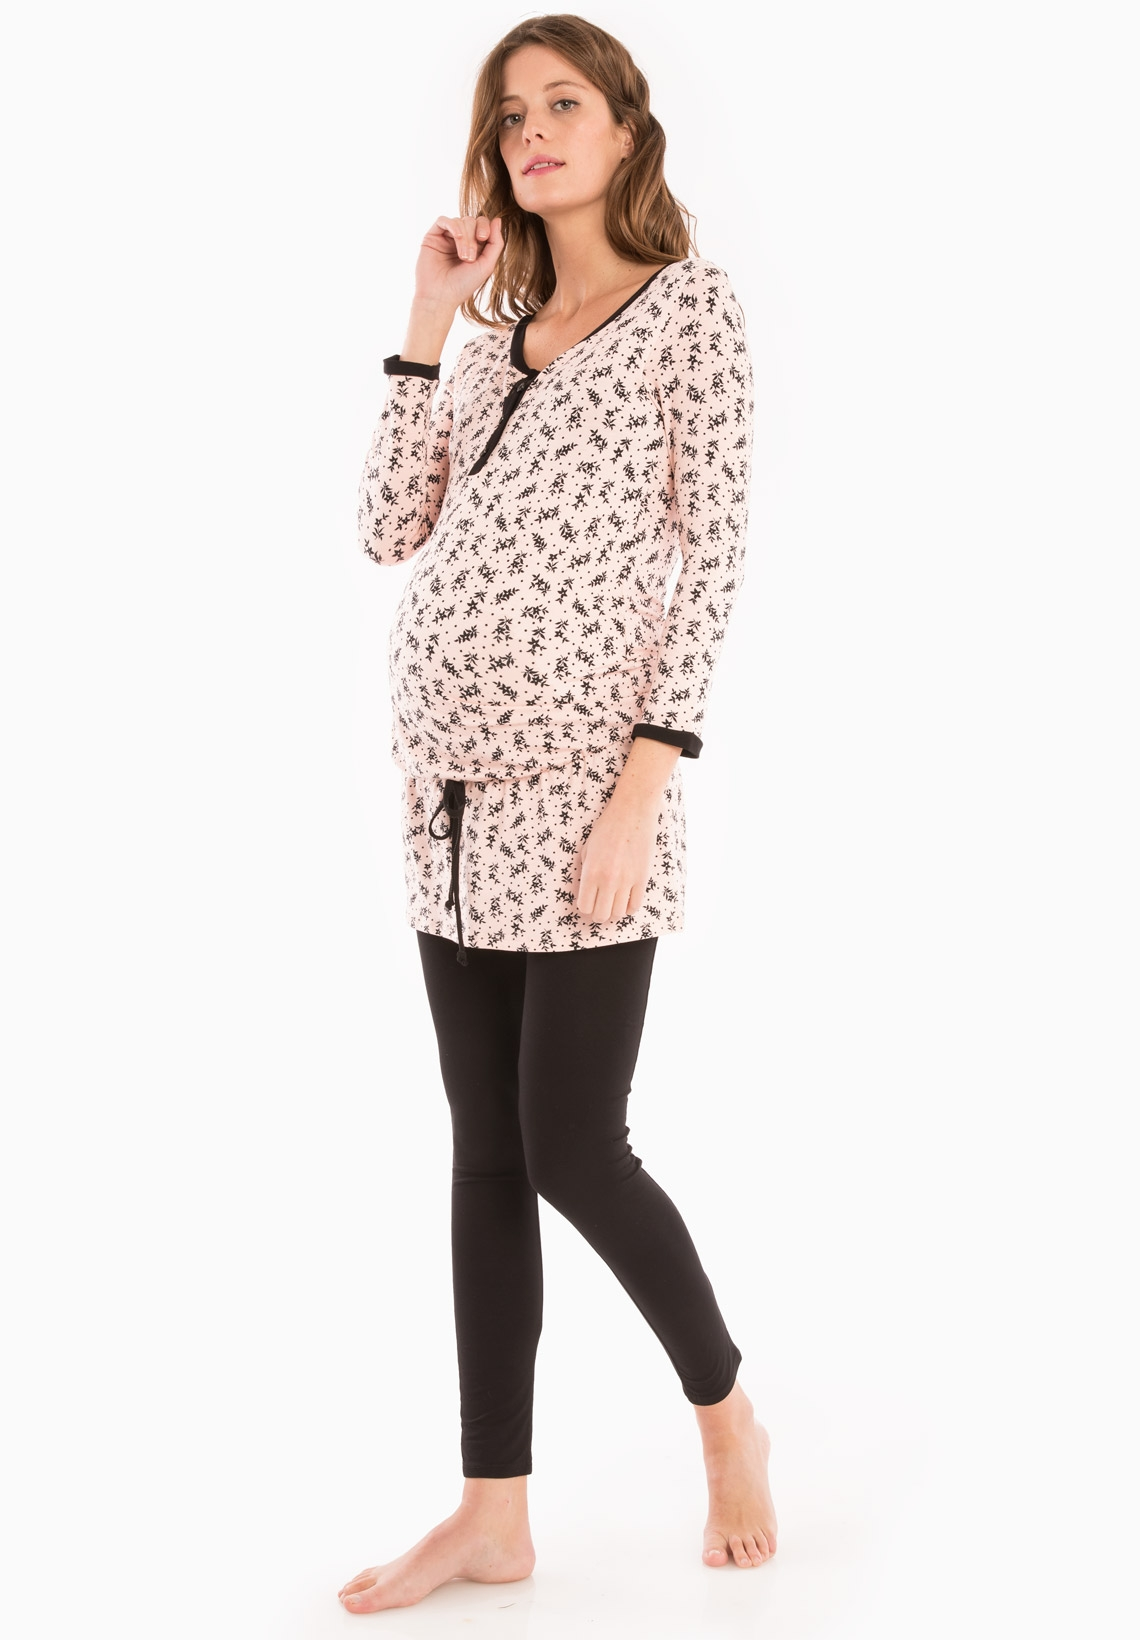 maternity nightwear reves ls feuillage03